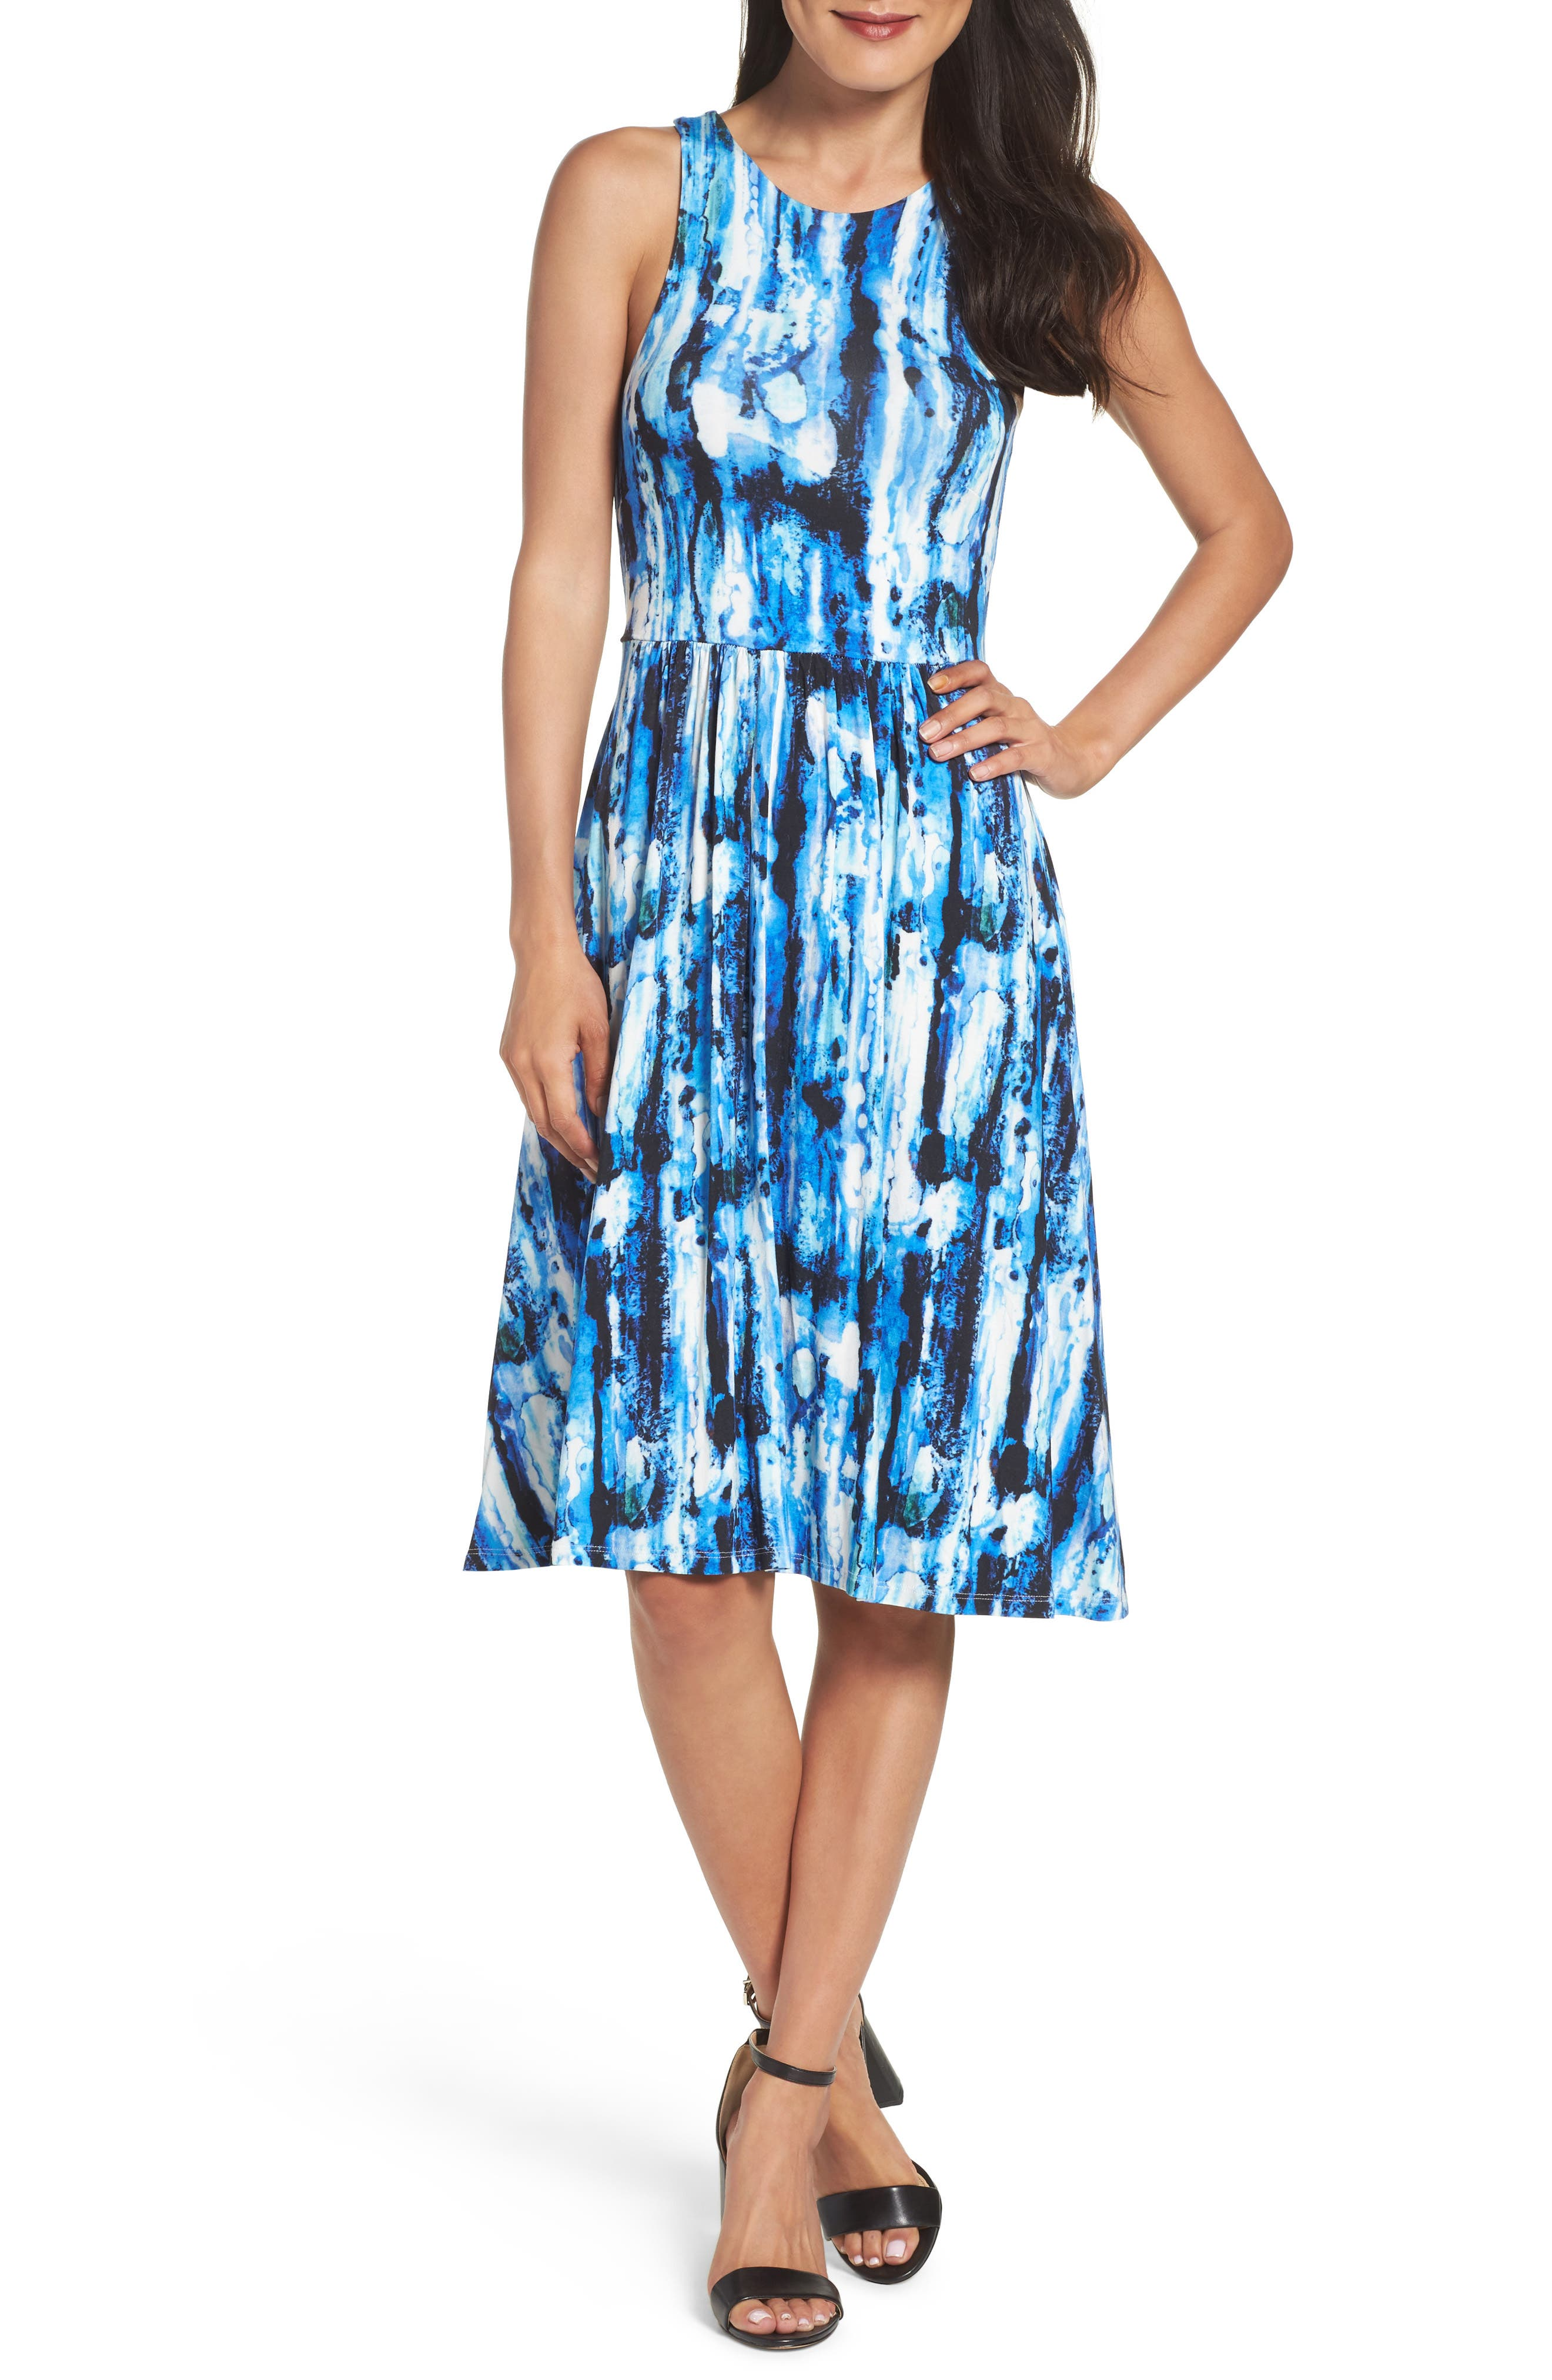 Main Image - Felicity & Coco Print Fit & Flare Dress (Regular & Petite) (Nordstrom Exclusive)